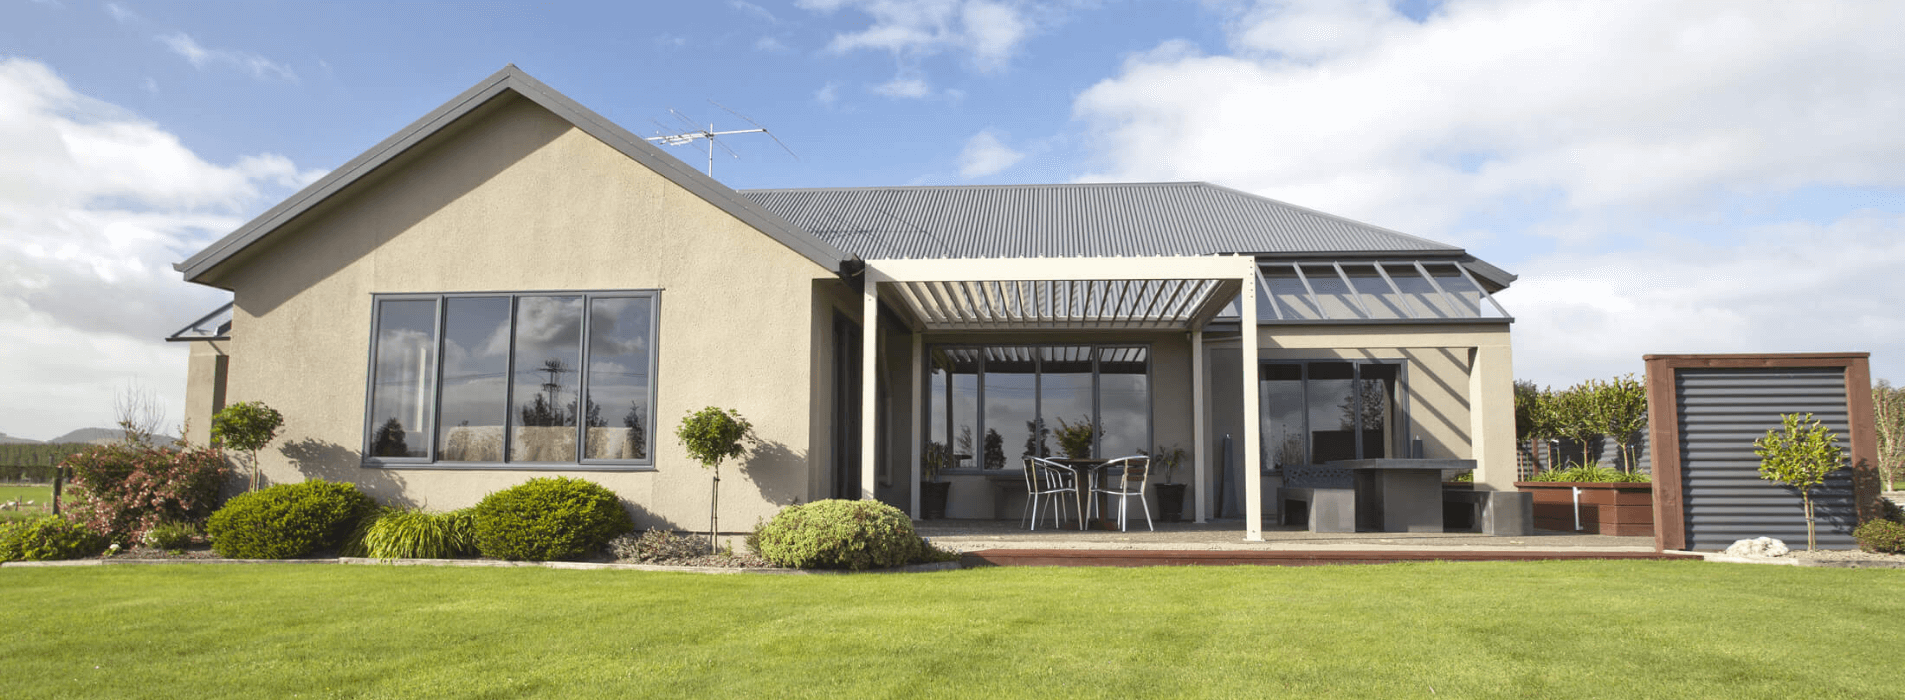 Aurae Southland residence project